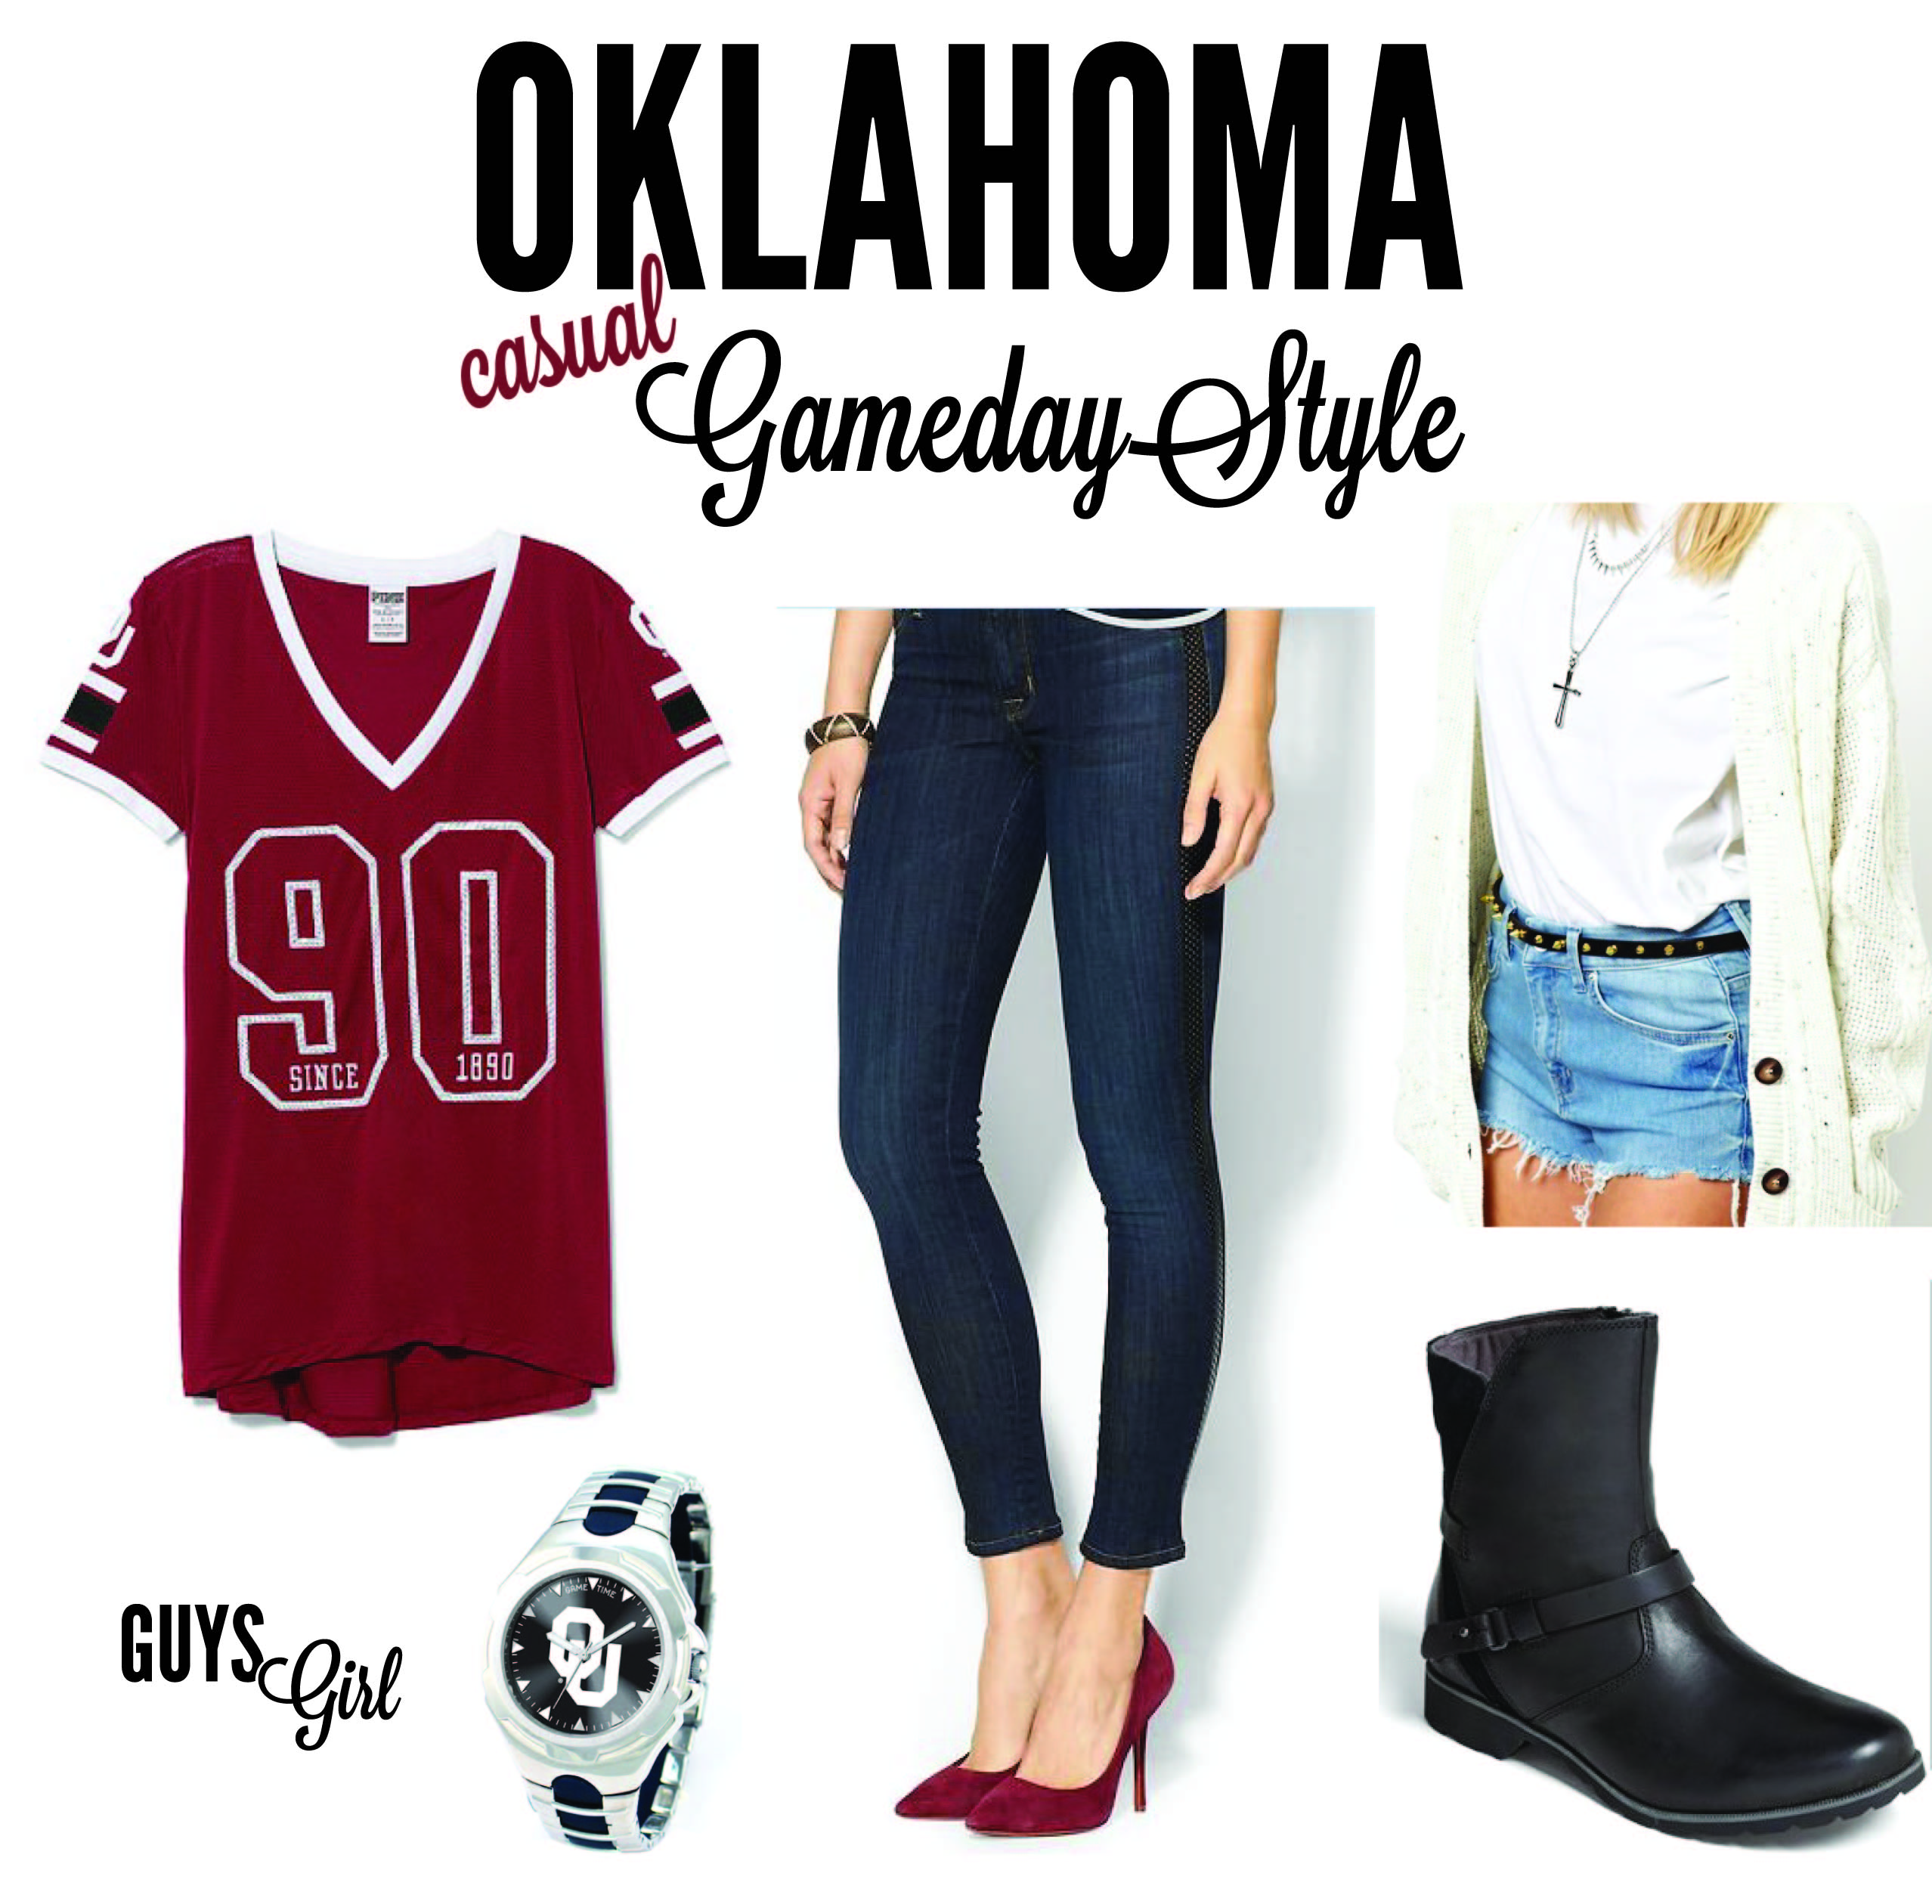 Alabama vs Oklahoma Gameday Style and Preview